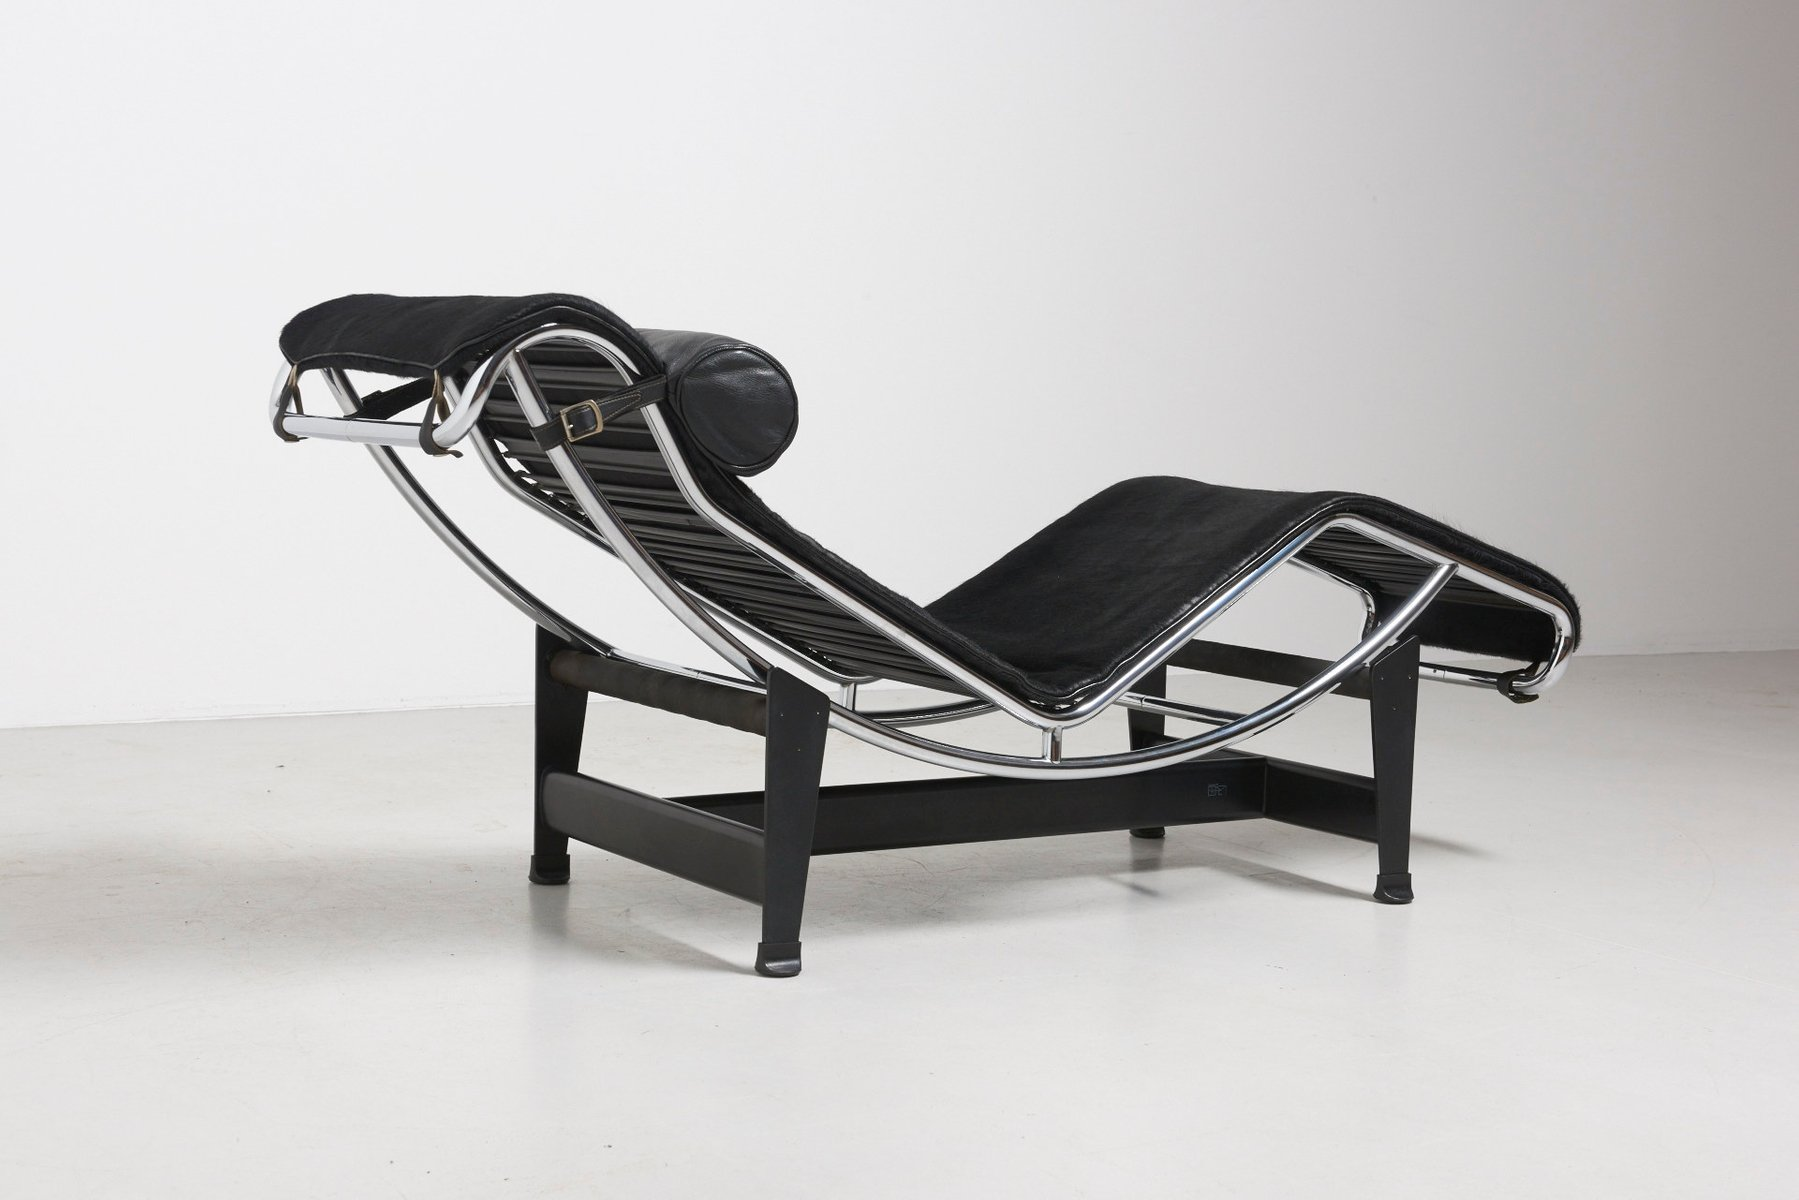 vintage lc4 chaise lounge by le corbusier for cassina for sale at pamono. Black Bedroom Furniture Sets. Home Design Ideas